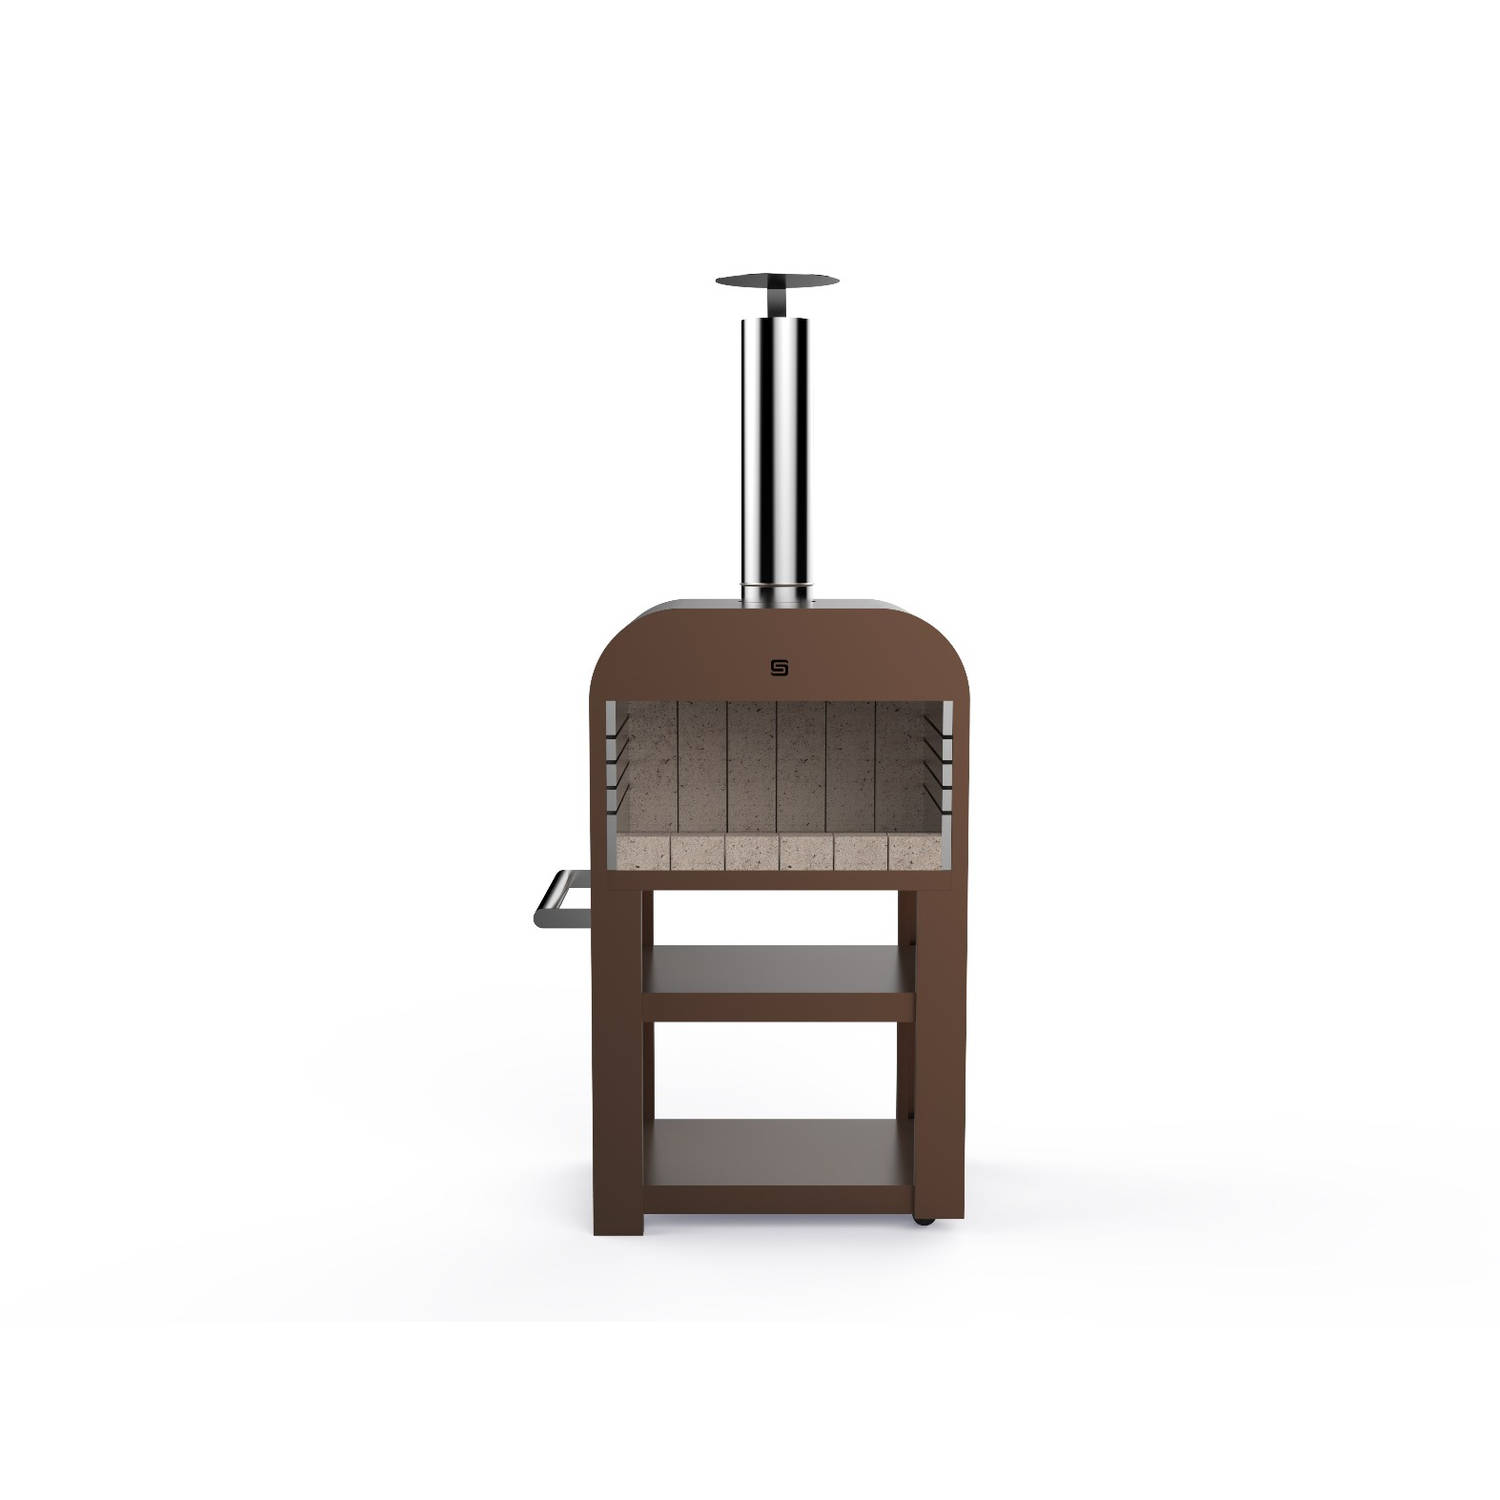 Sarom Fuoco - Iron Large - Barbecue - Houtskool & Hout - Bruin